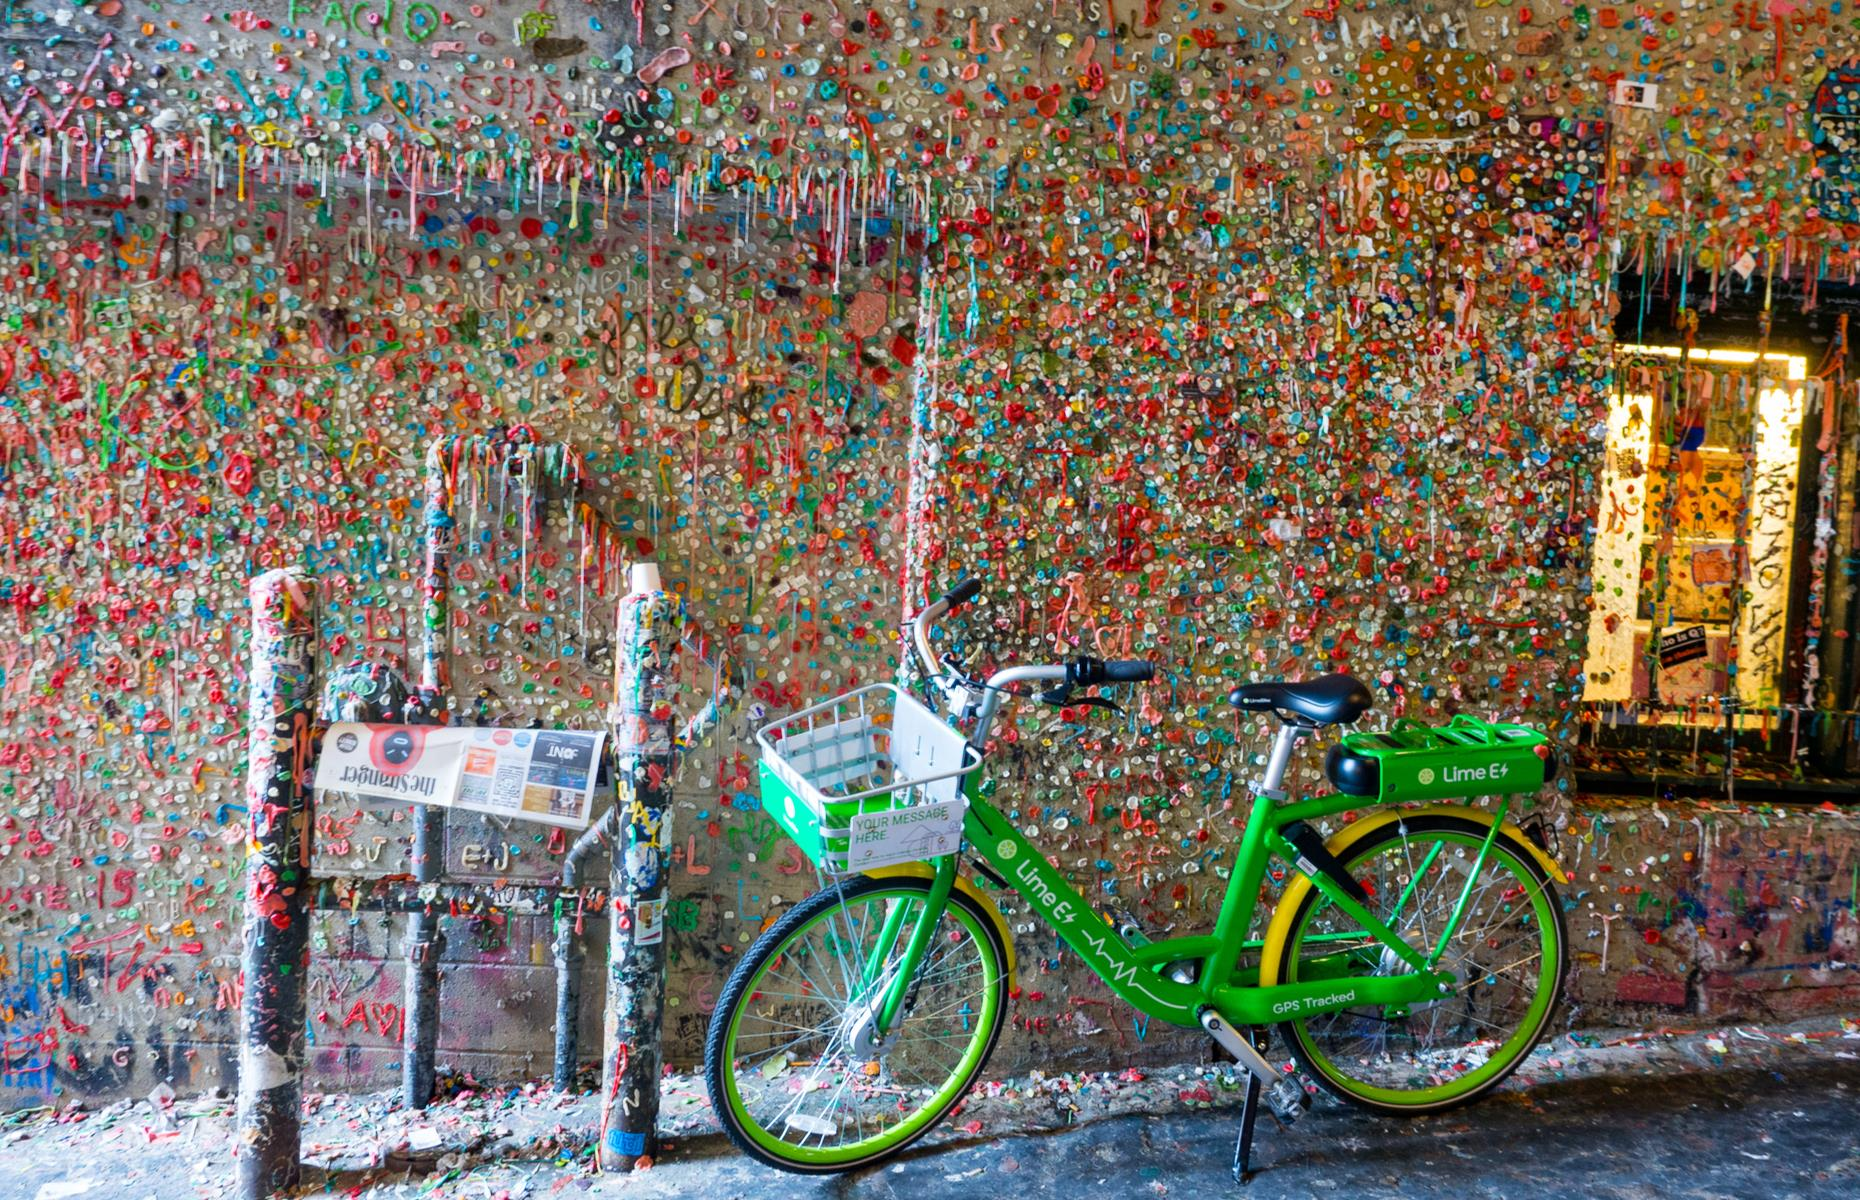 Slide 25 of 31: The chewing gum wall in Seattle's Pike Place Market is a funny sight. A splash of different colored gum covers the wall, with some pieces stretched or shaped into messages. Pictures and mementos are also glued up. It all began in the 1990s, with theater-goers sticking their gum to the wall while waiting for shows. In 2015 the market management tried to clear it up, steaming a total of 2,350 lbs off the wall, but the very next week people were right back at it.